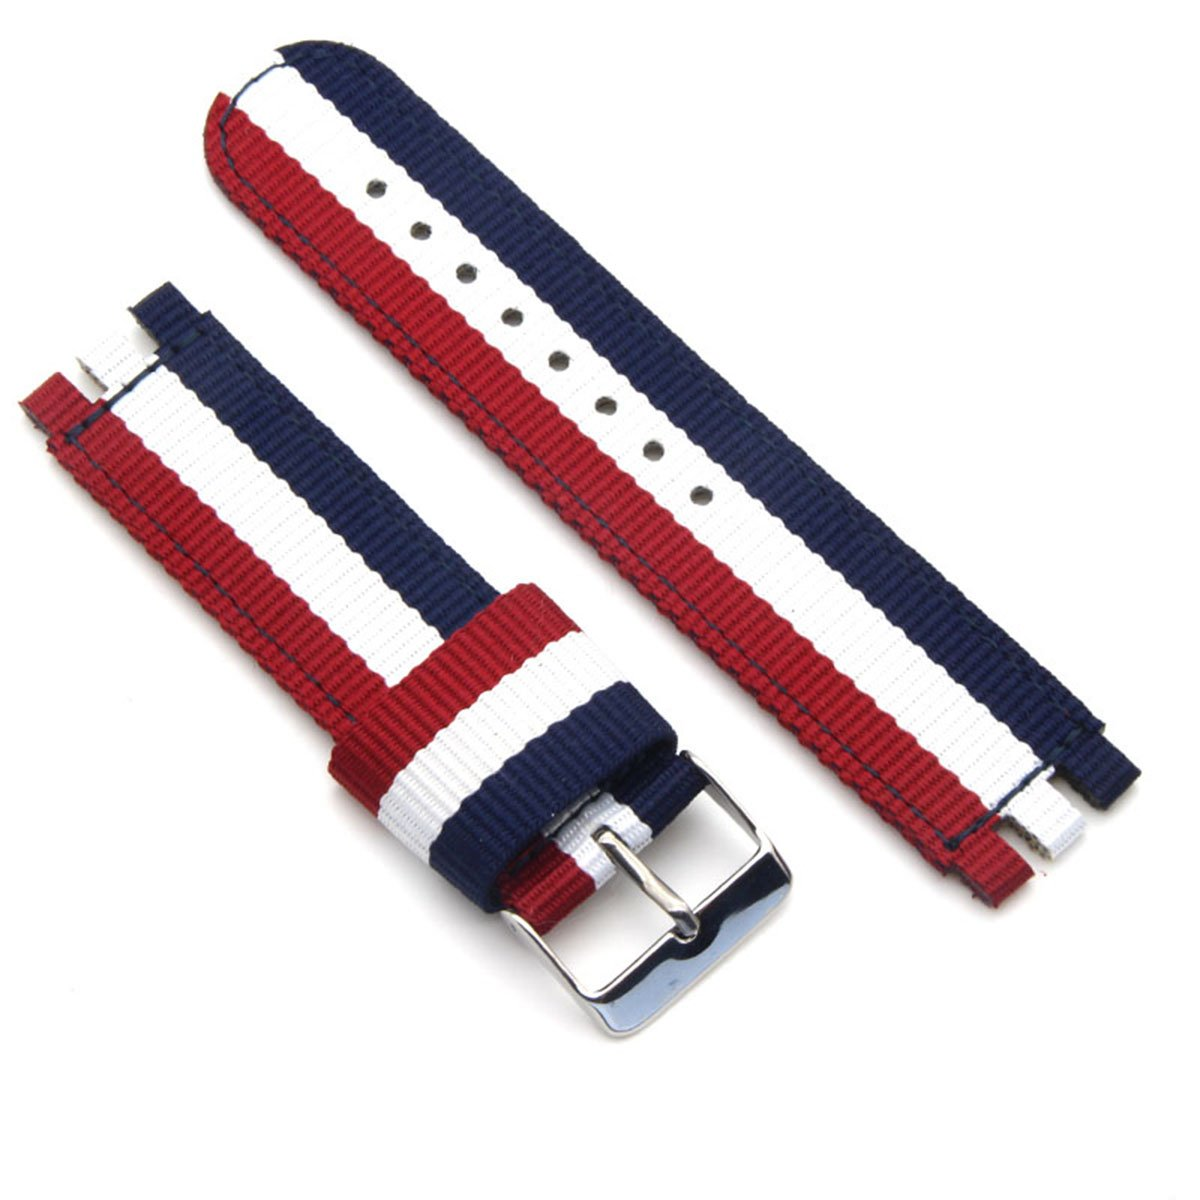 Zeit Diktator 19mm Nylon Watch Band for Swatch Style Multi-Color Replacement Strap (3 Stripes-Silver Buckle)